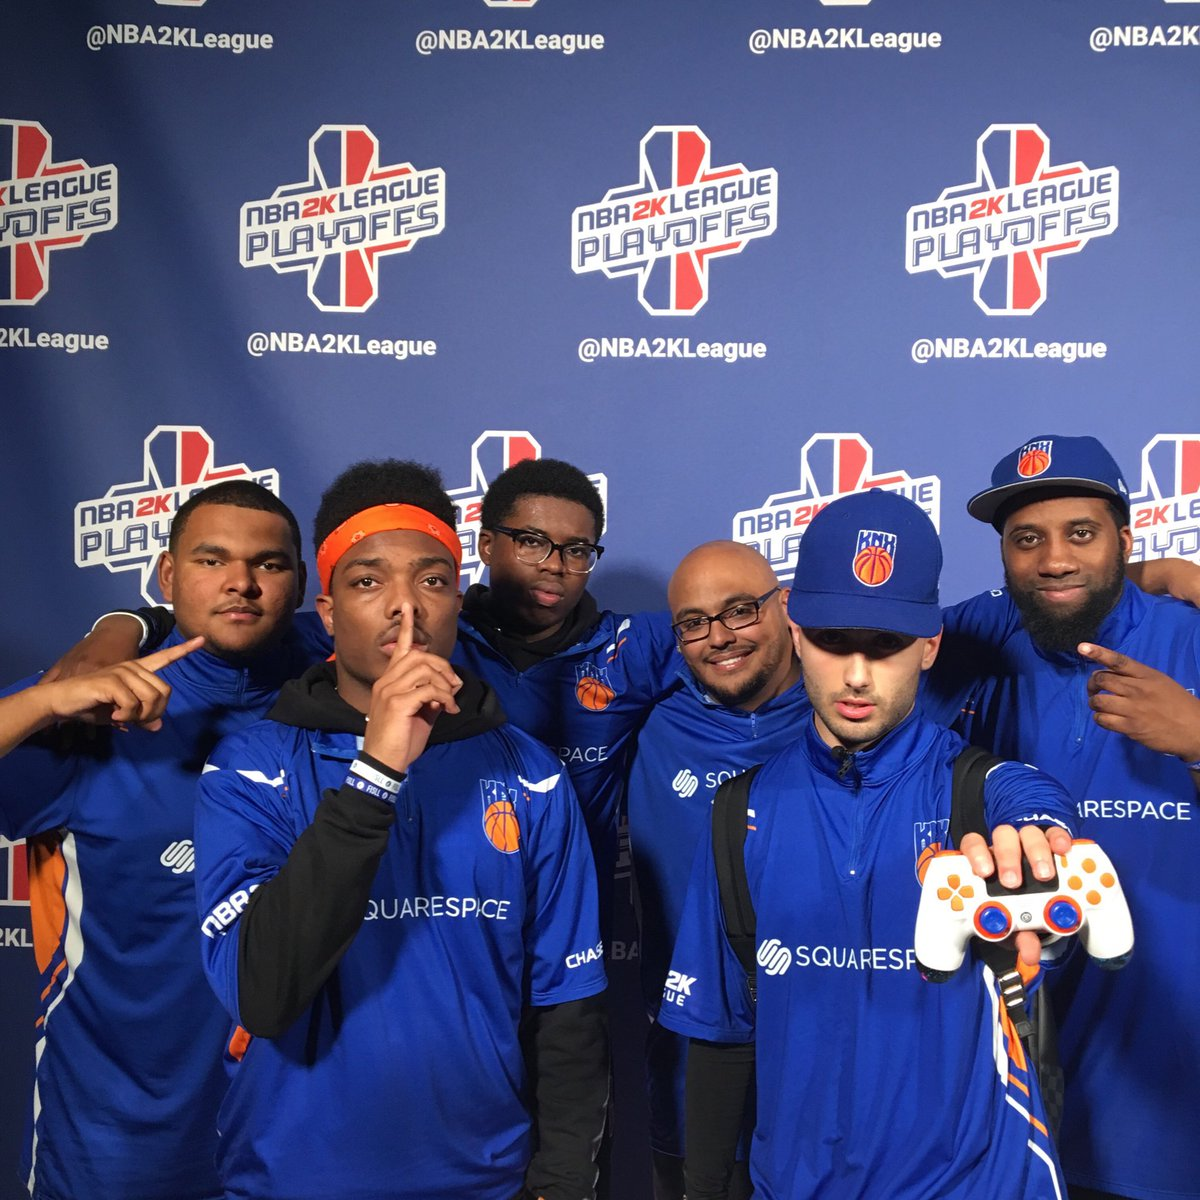 RT @NBA2KLeague: ???? @KnicksGaming get the win to advance to the semifinals! https://t.co/NiEoMDSy7J